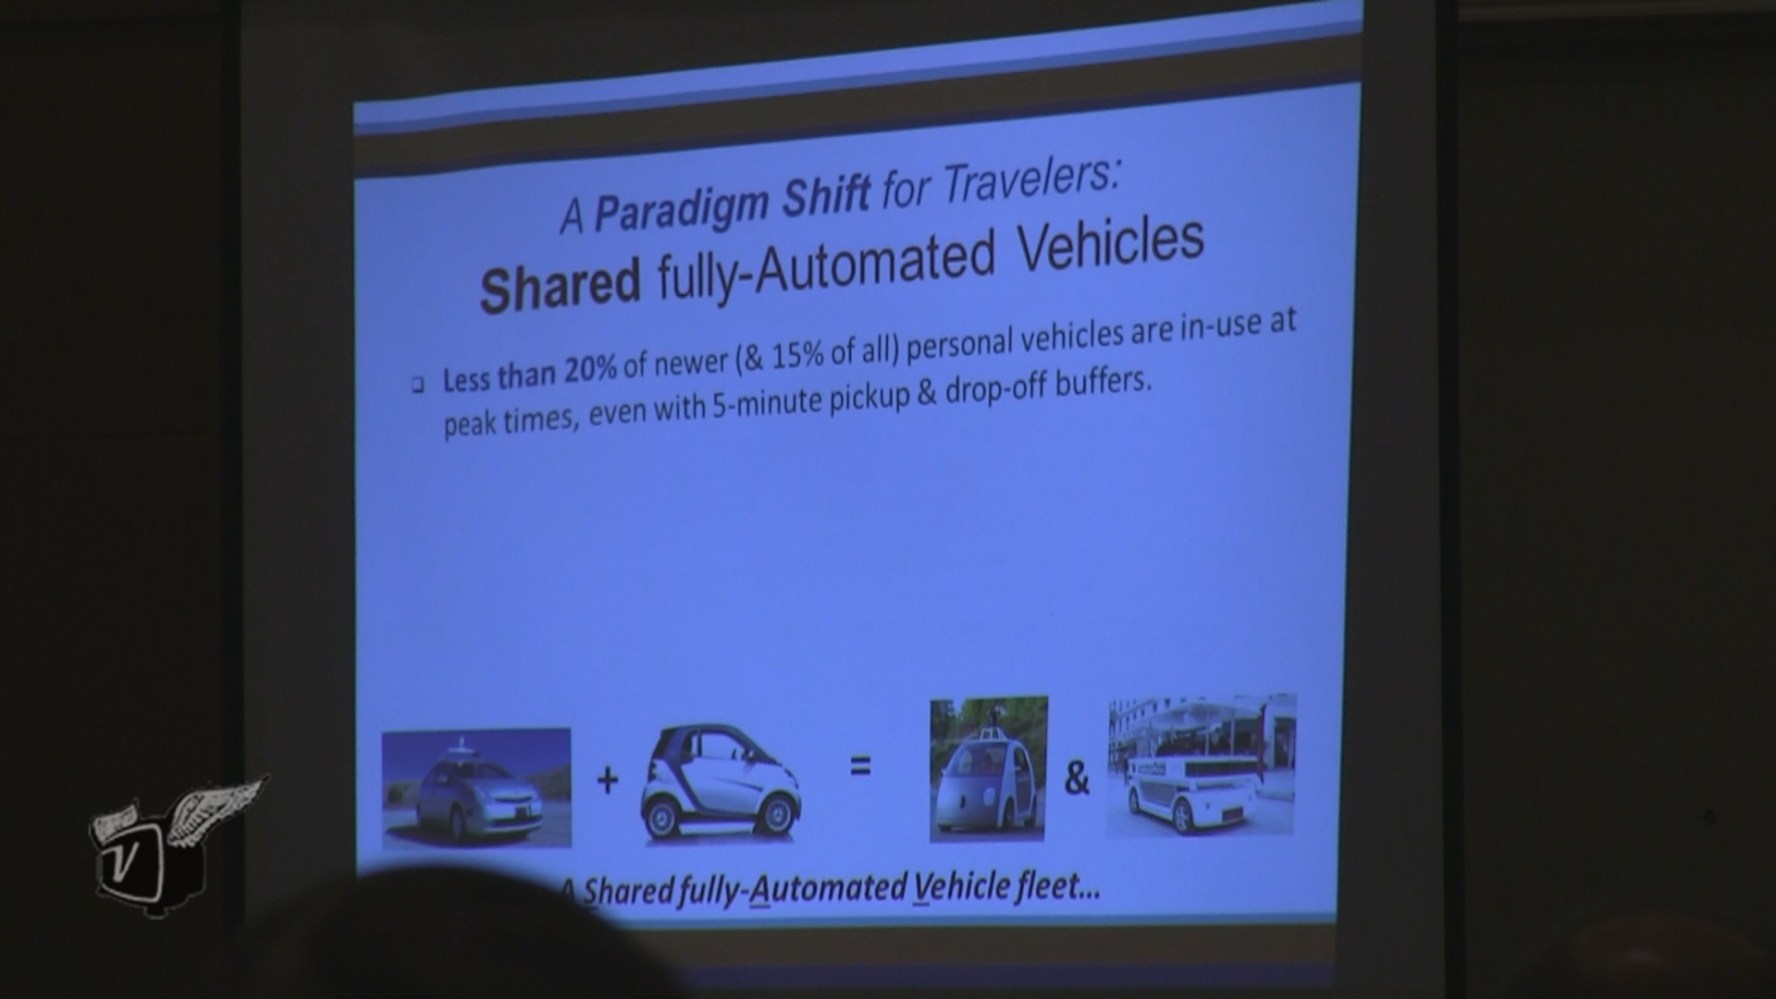 A screen shot from Dan Fagnant's presentation at the July 2014 Automated Vehicle Symposium.